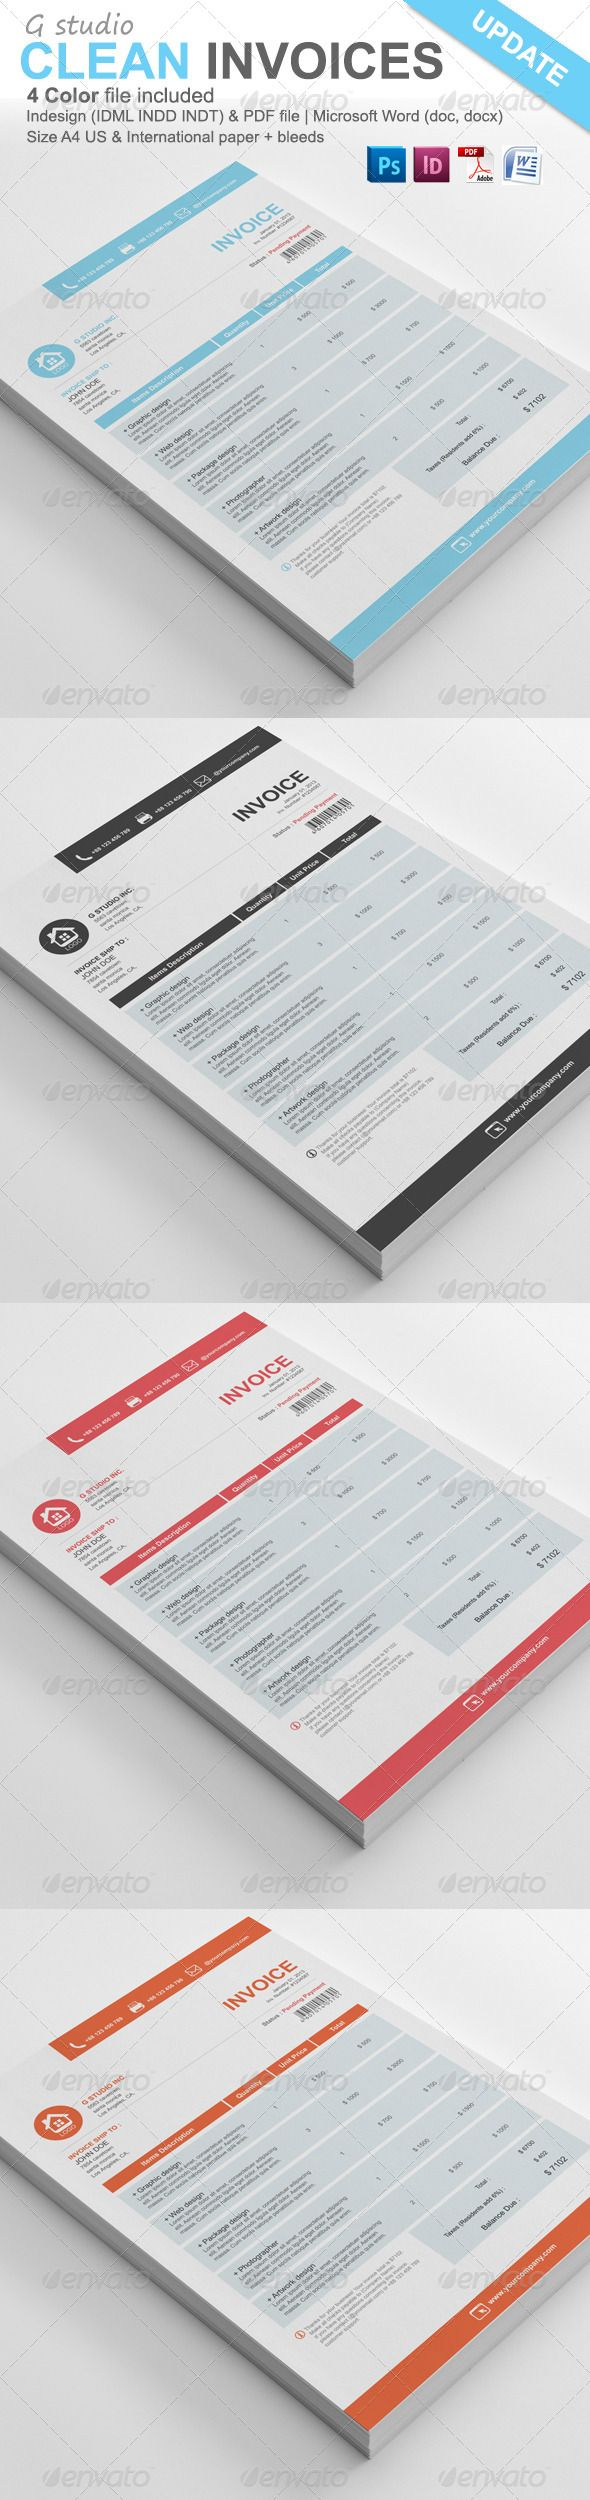 Gstudio Clean Invoices Template 19 best office